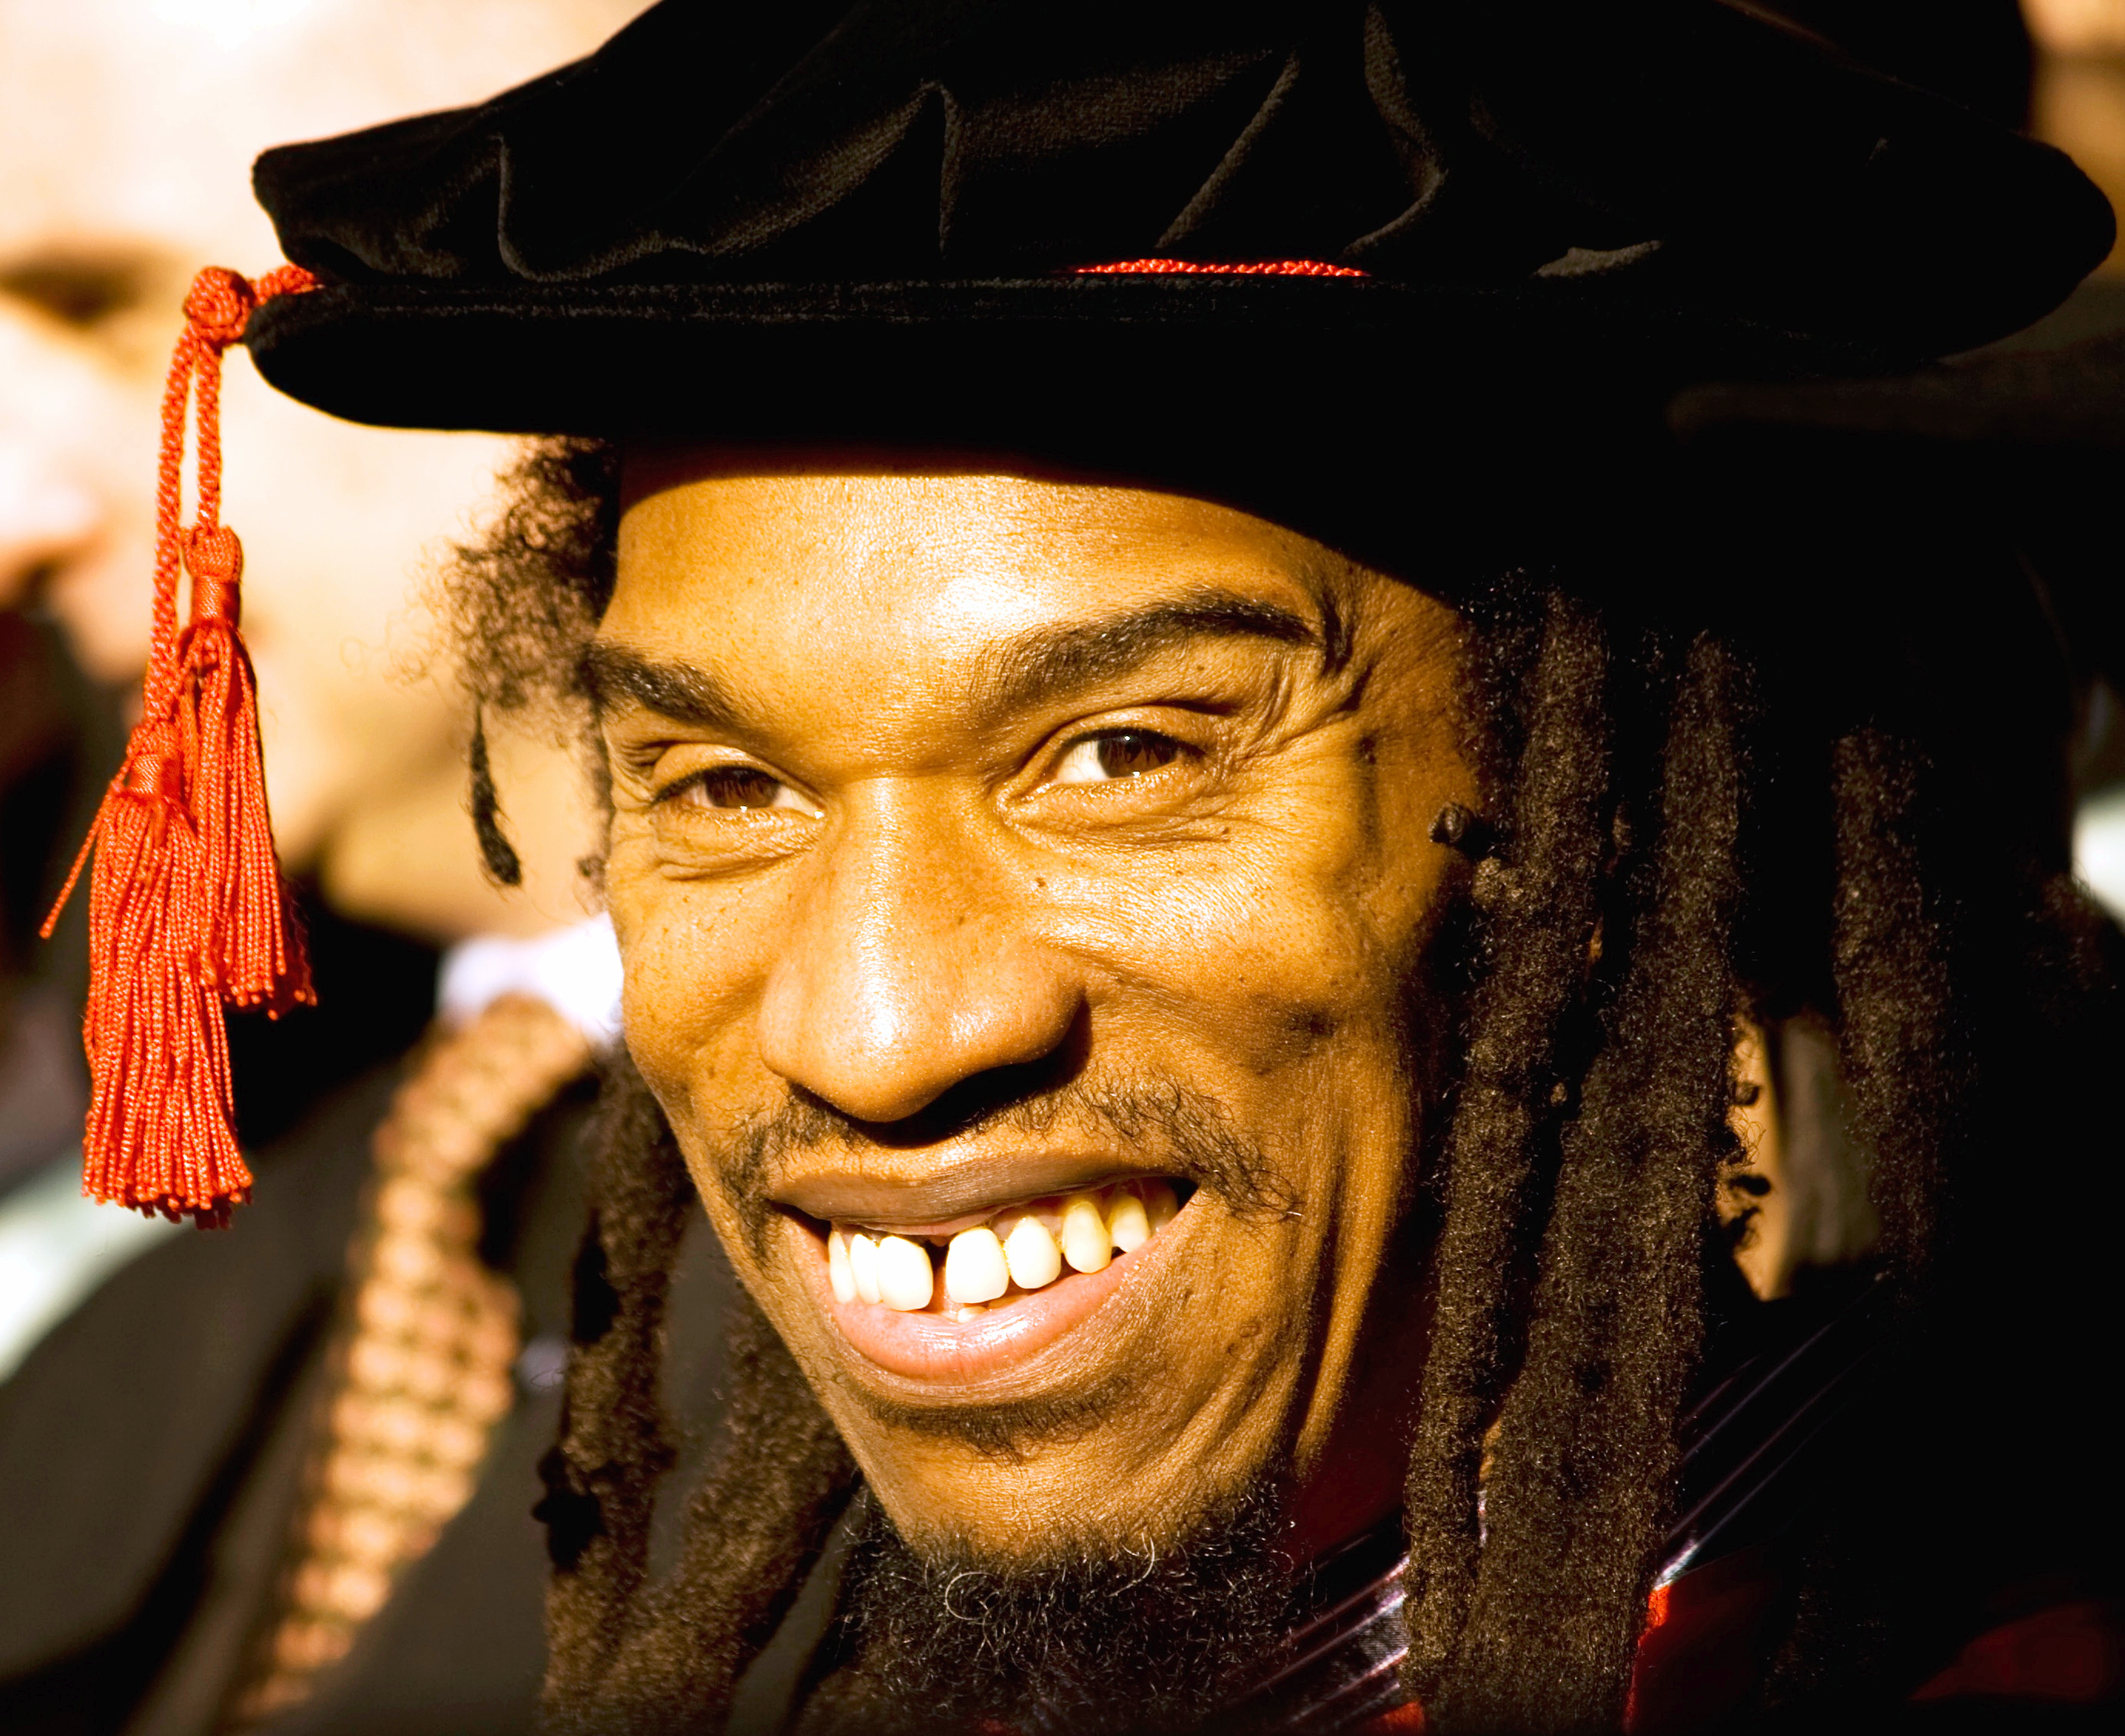 Benjamin Zephaniah turns down poet laureate nomination